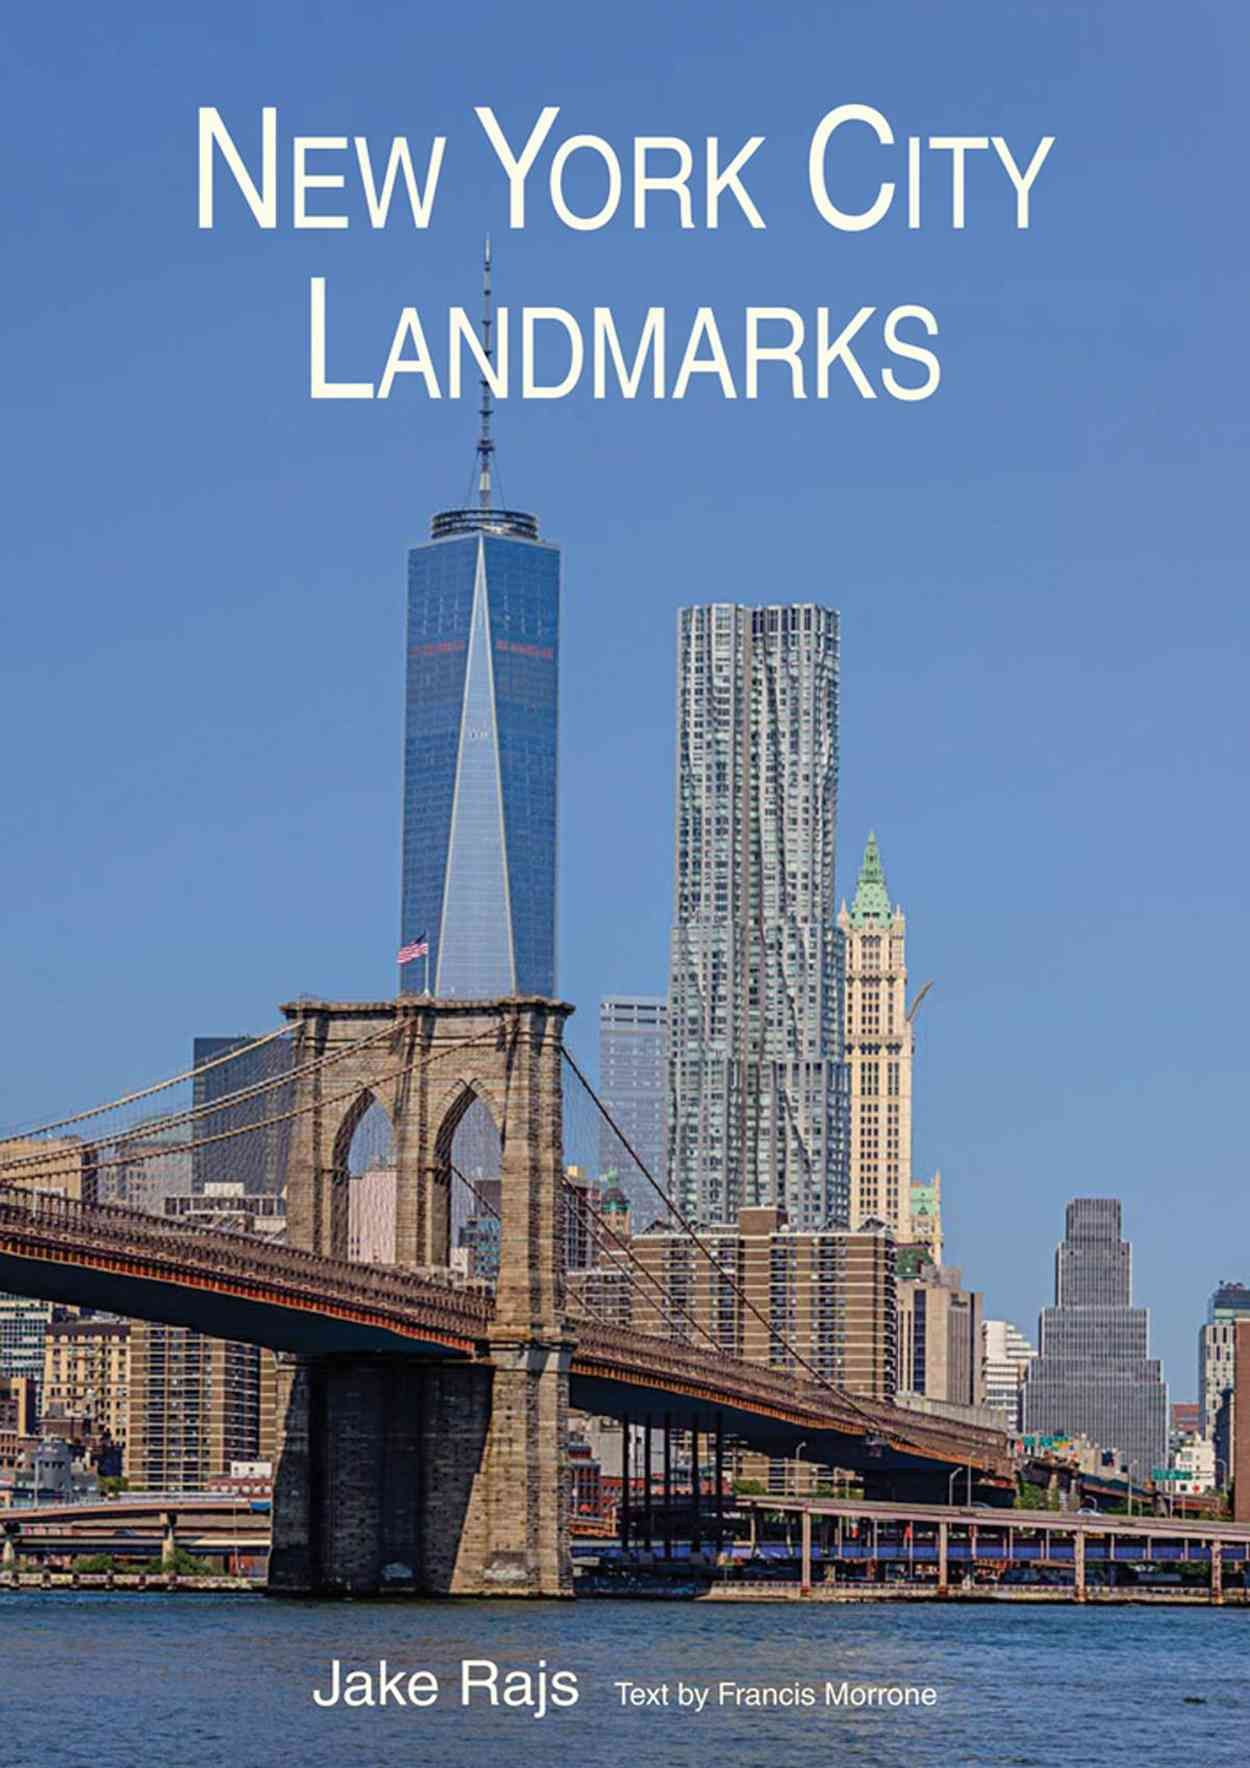 New York City Landmarks New york city, Landmarks, New